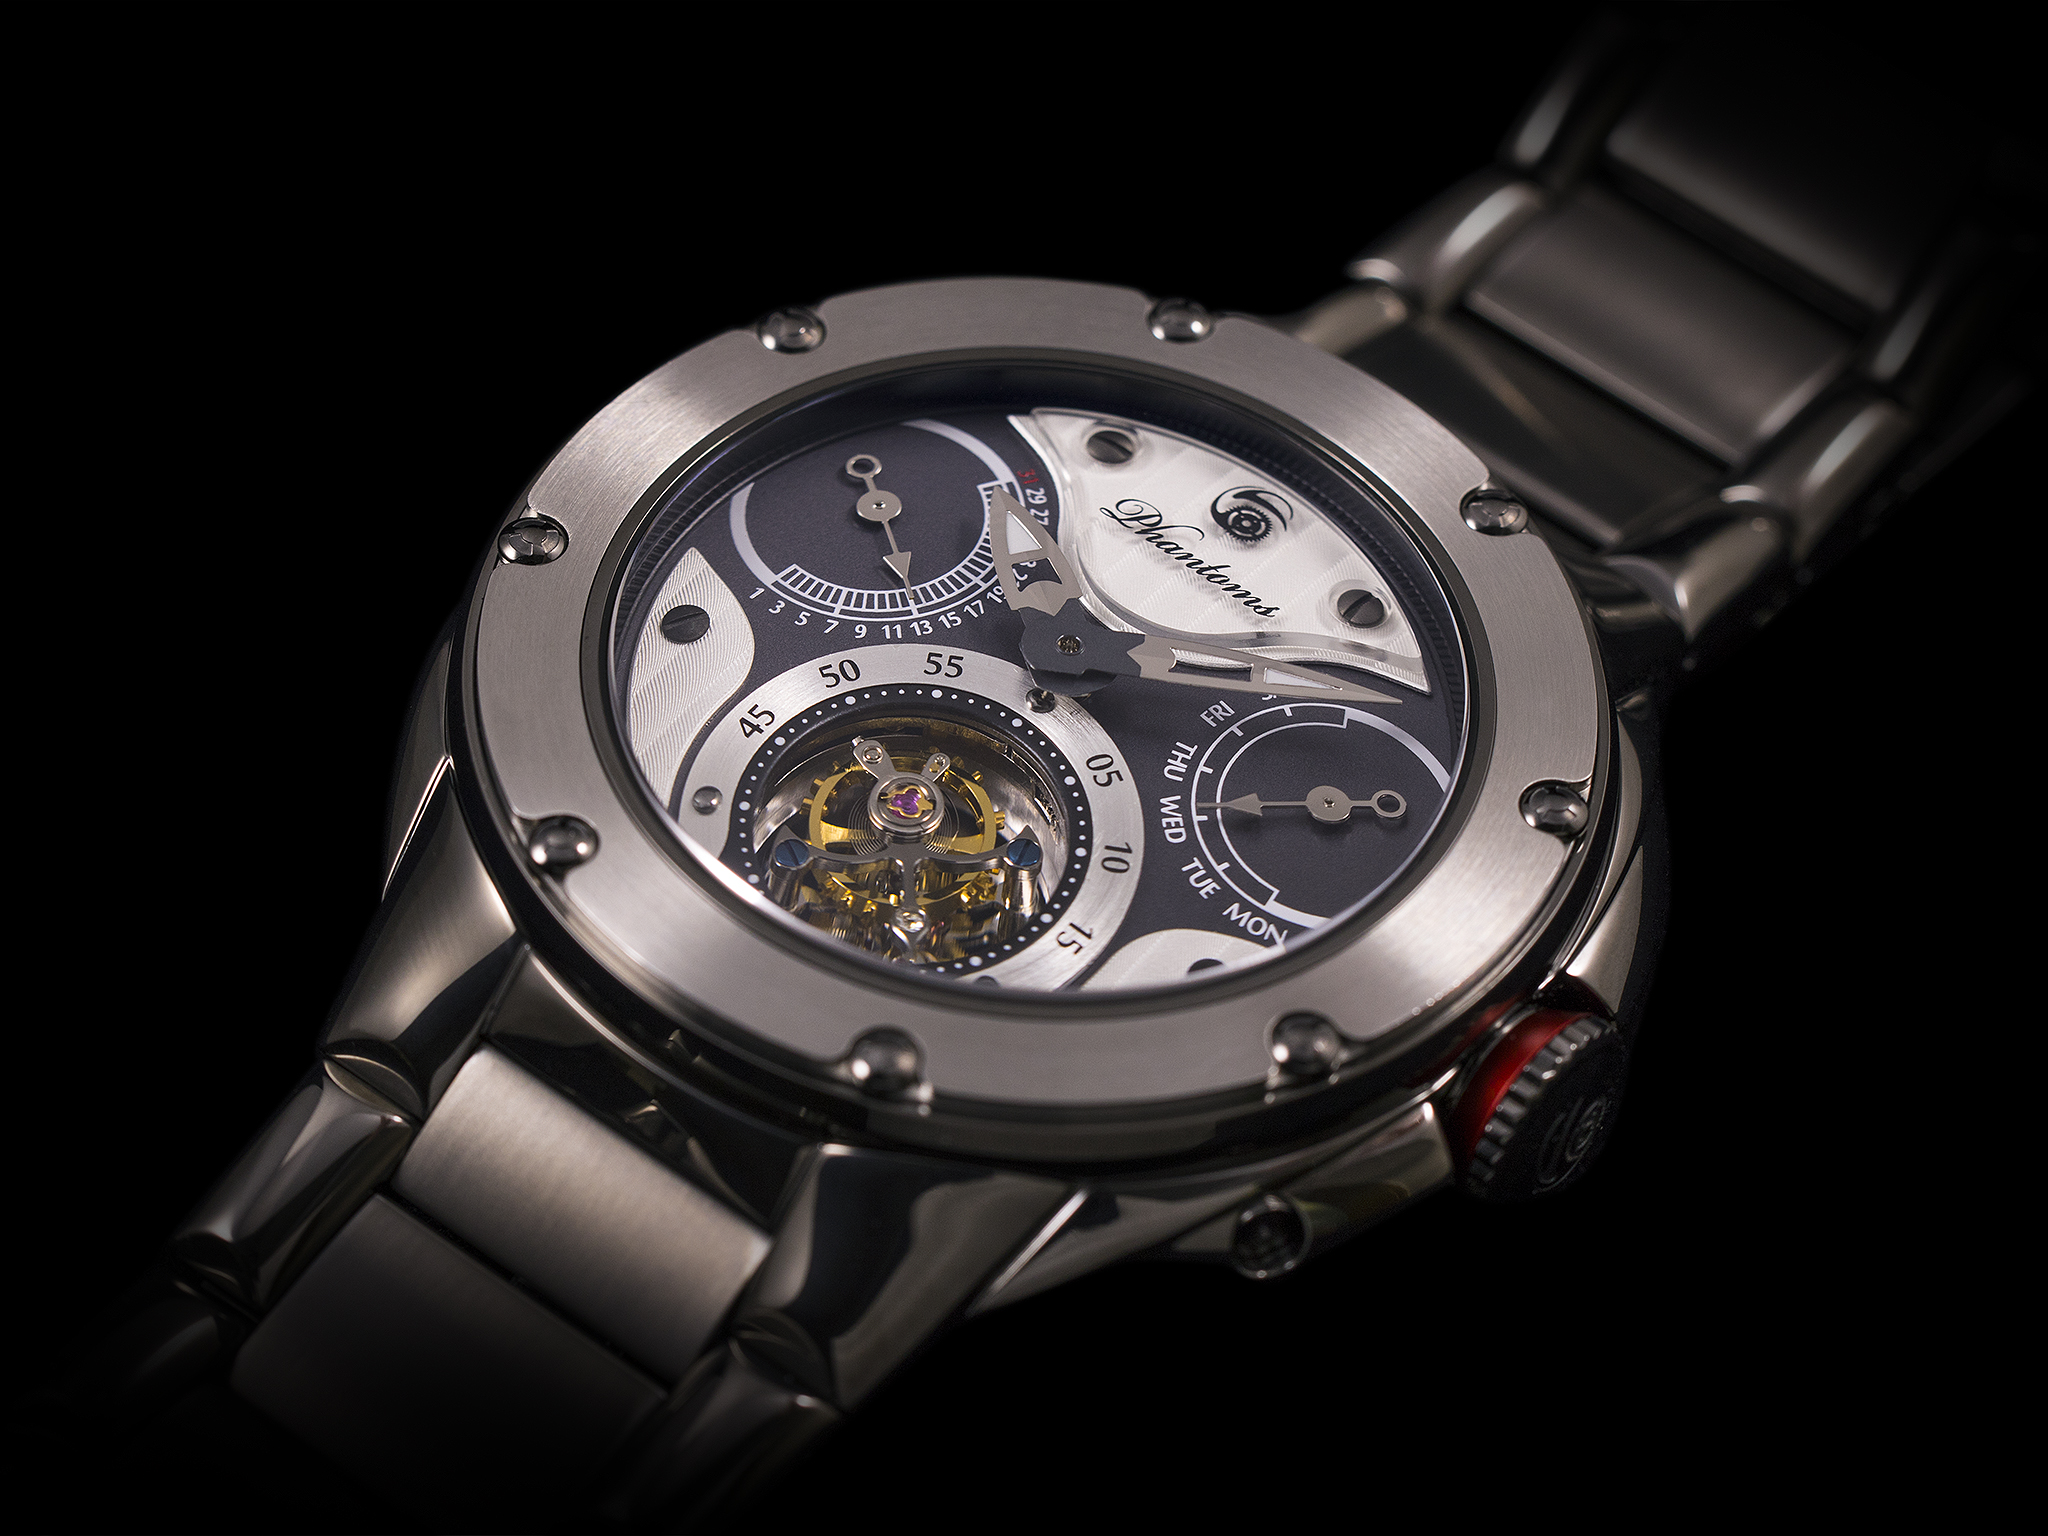 Phantoms Visionary Soul Tourbillon Mechanical Watch